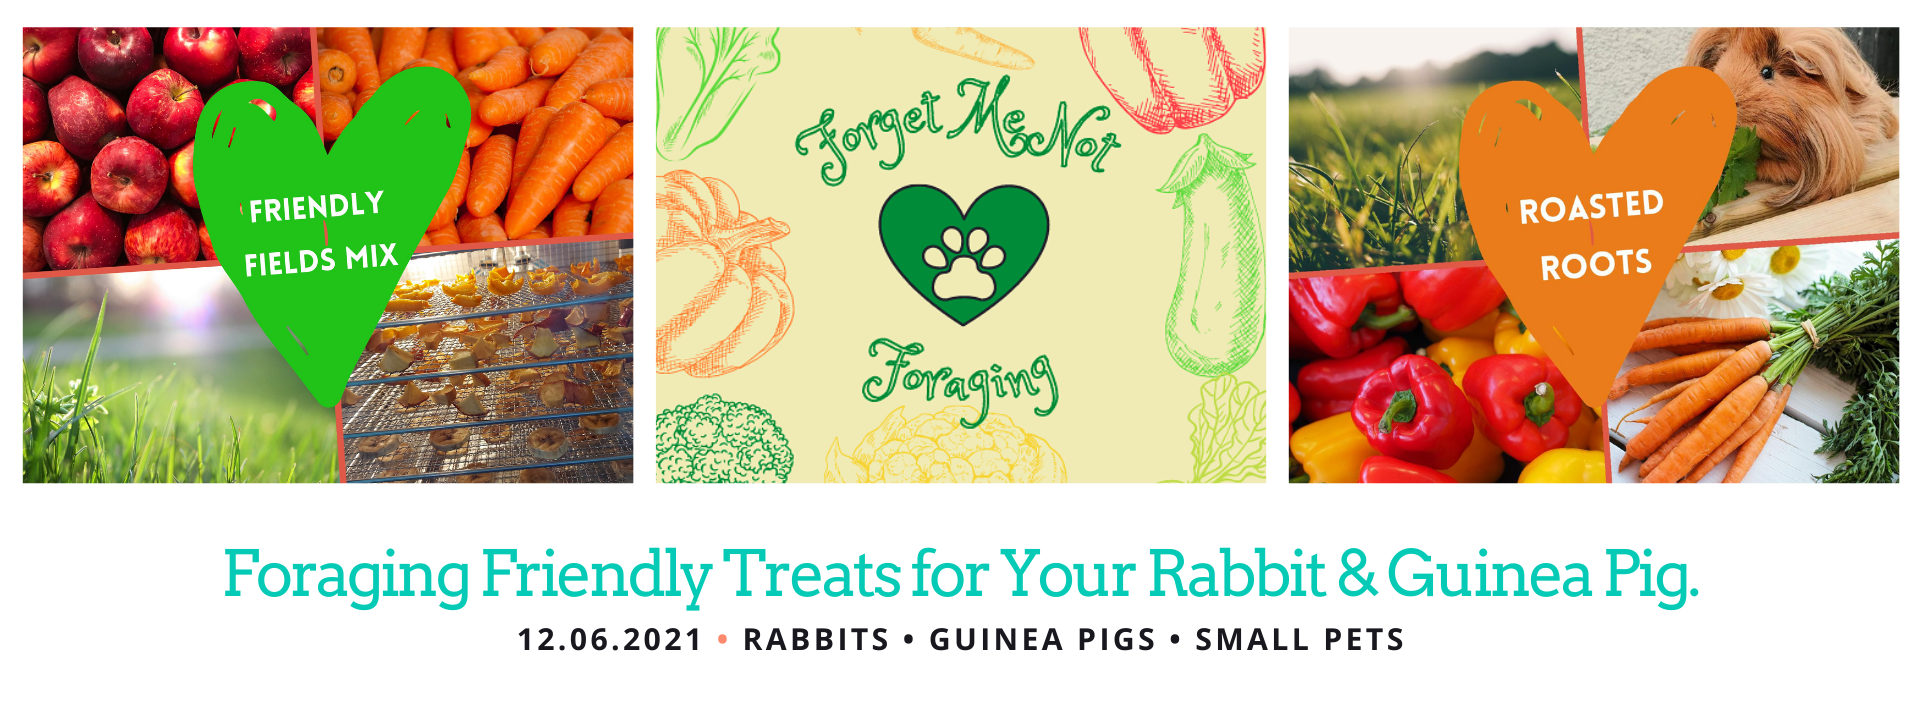 Foraging Friendly Treats for Small Pets